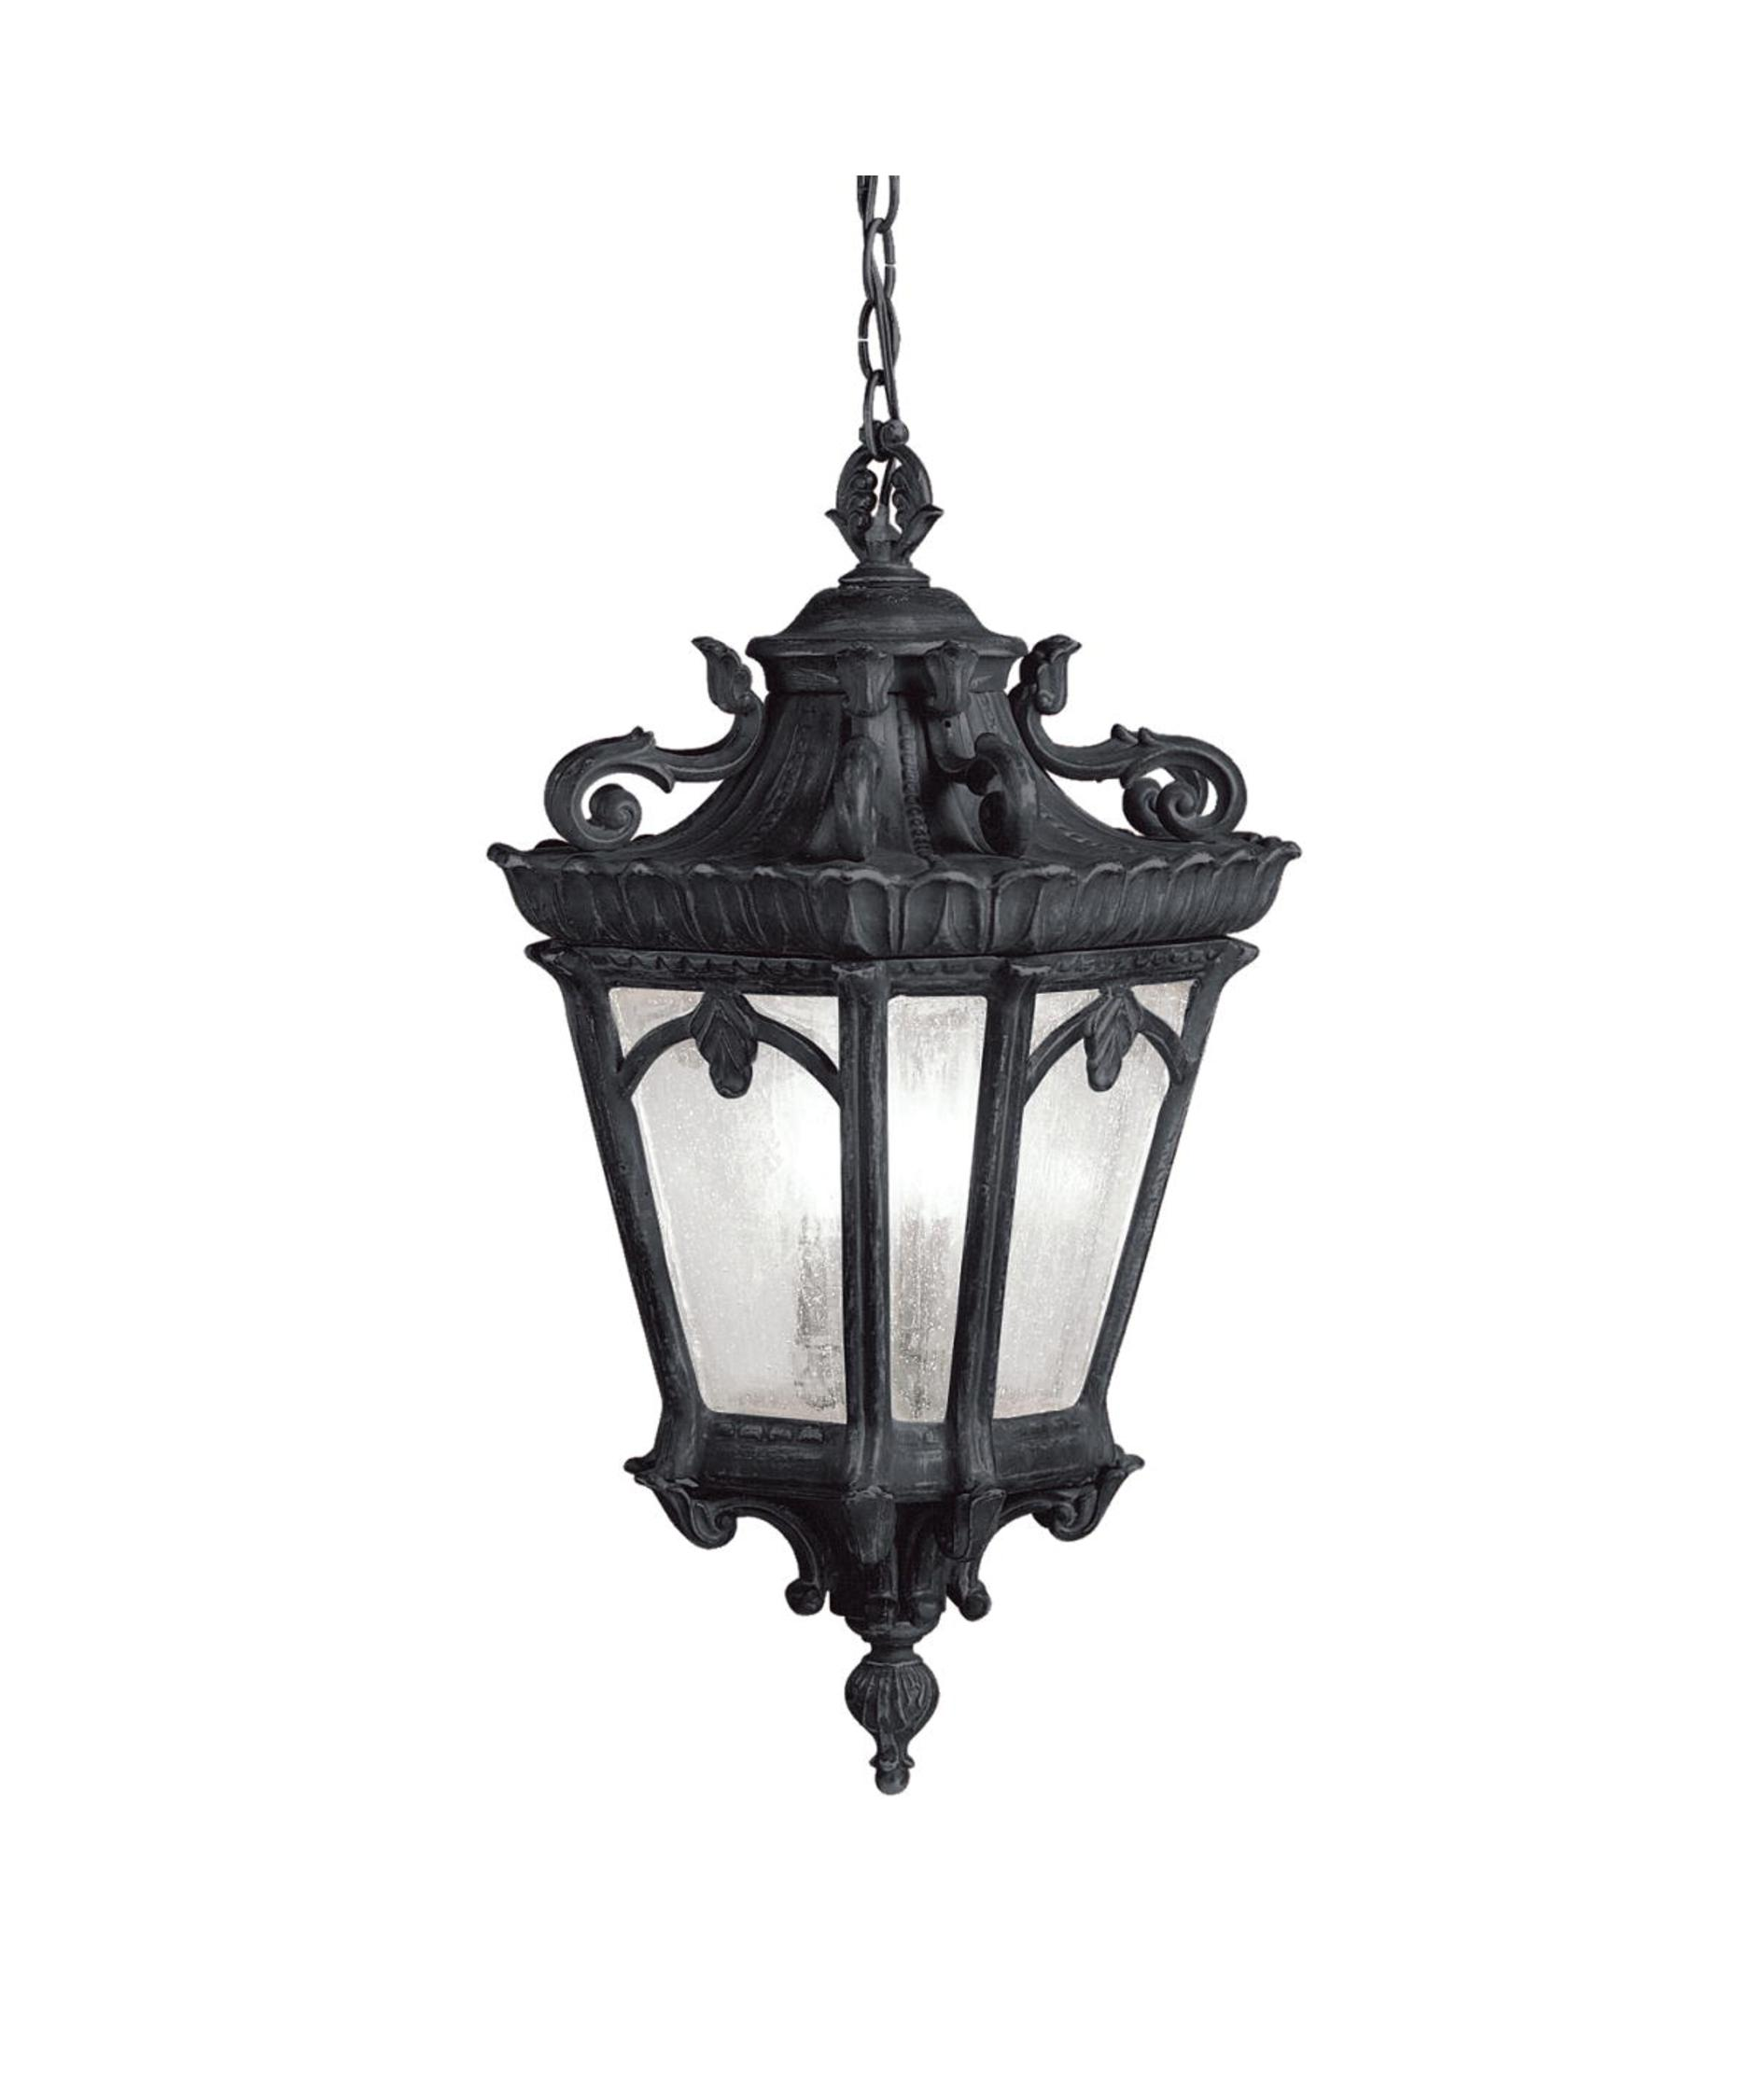 Outdoor hanging lamp - Shown In Textured Black Finish And Clear Seedy Glass